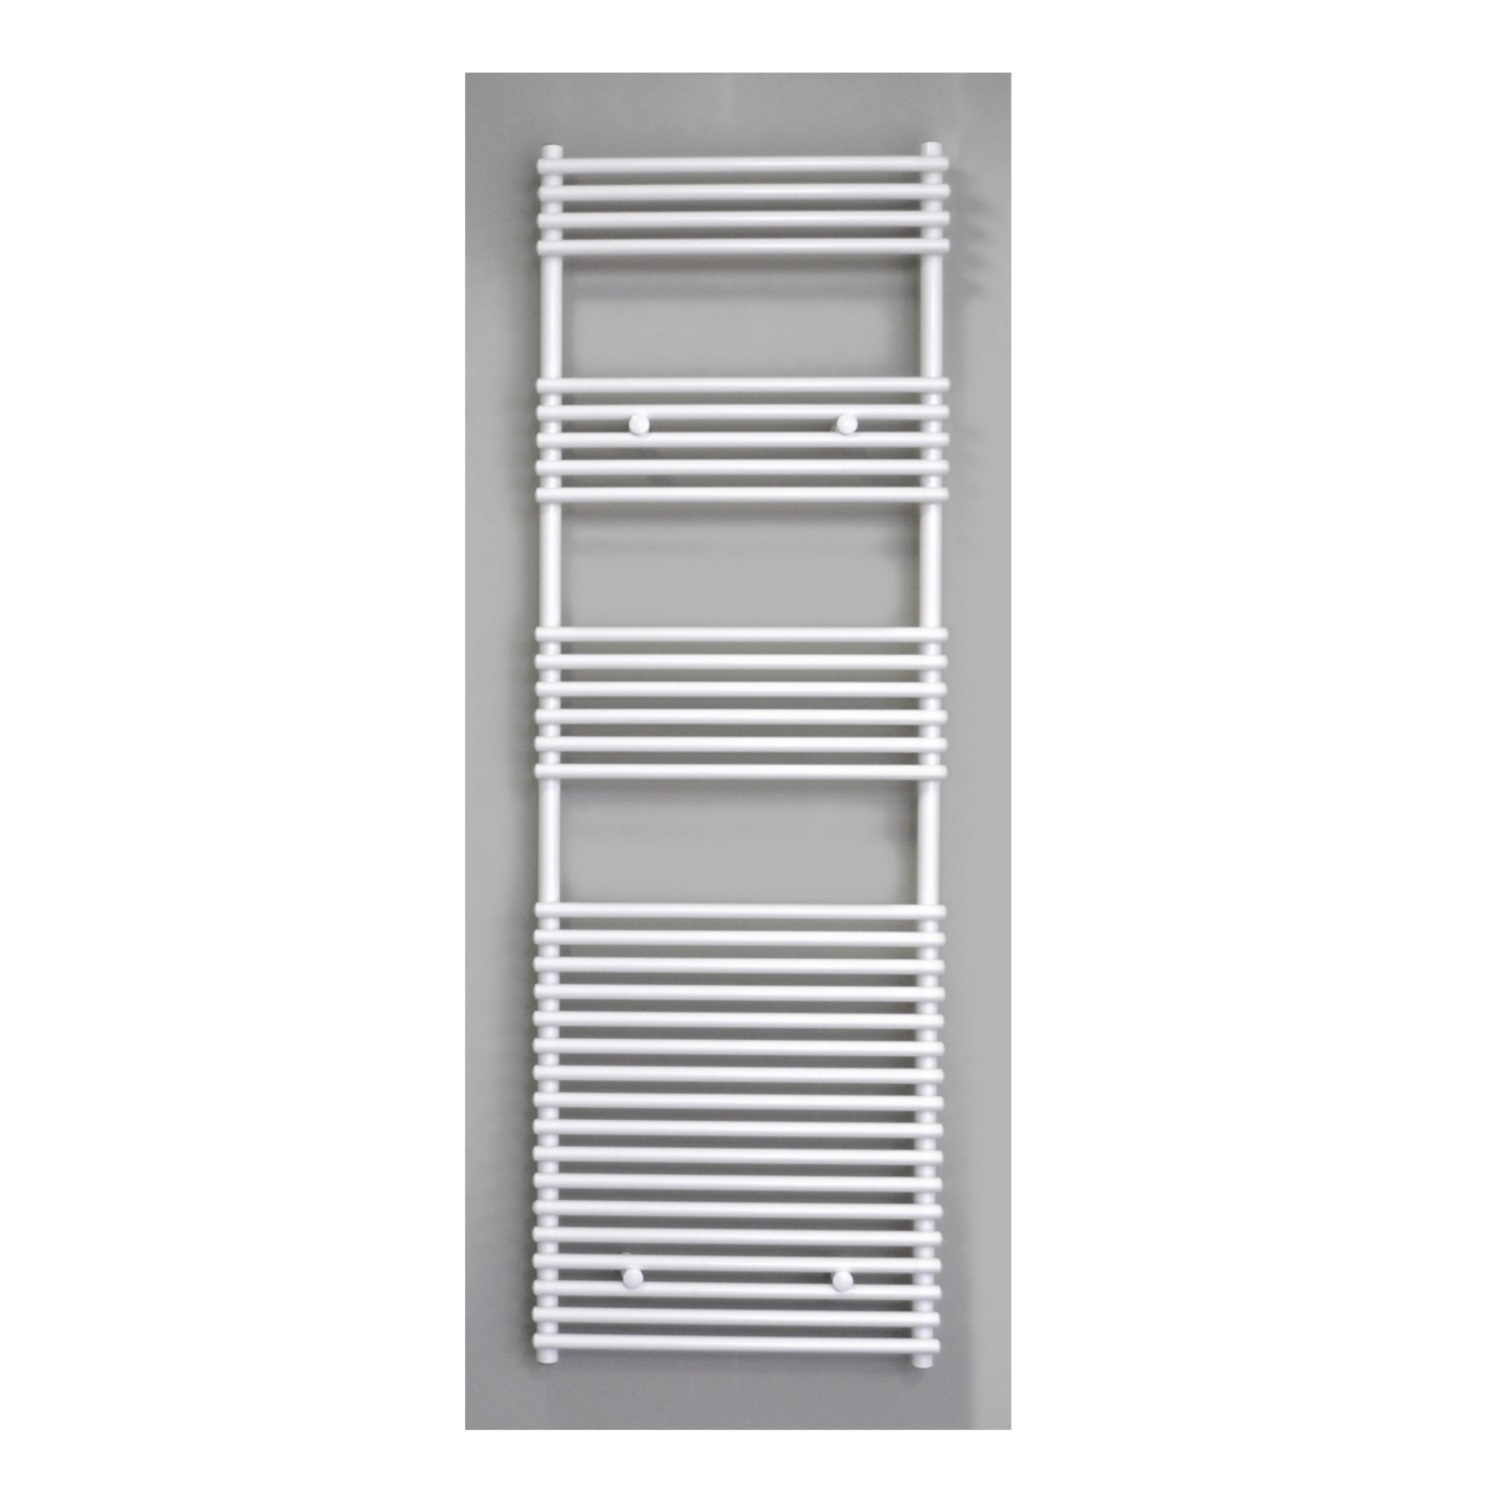 Radiator Sanicare Tube-On-Tube 1335 Watt Inclusief Ophanging 60x180 cm Antraciet